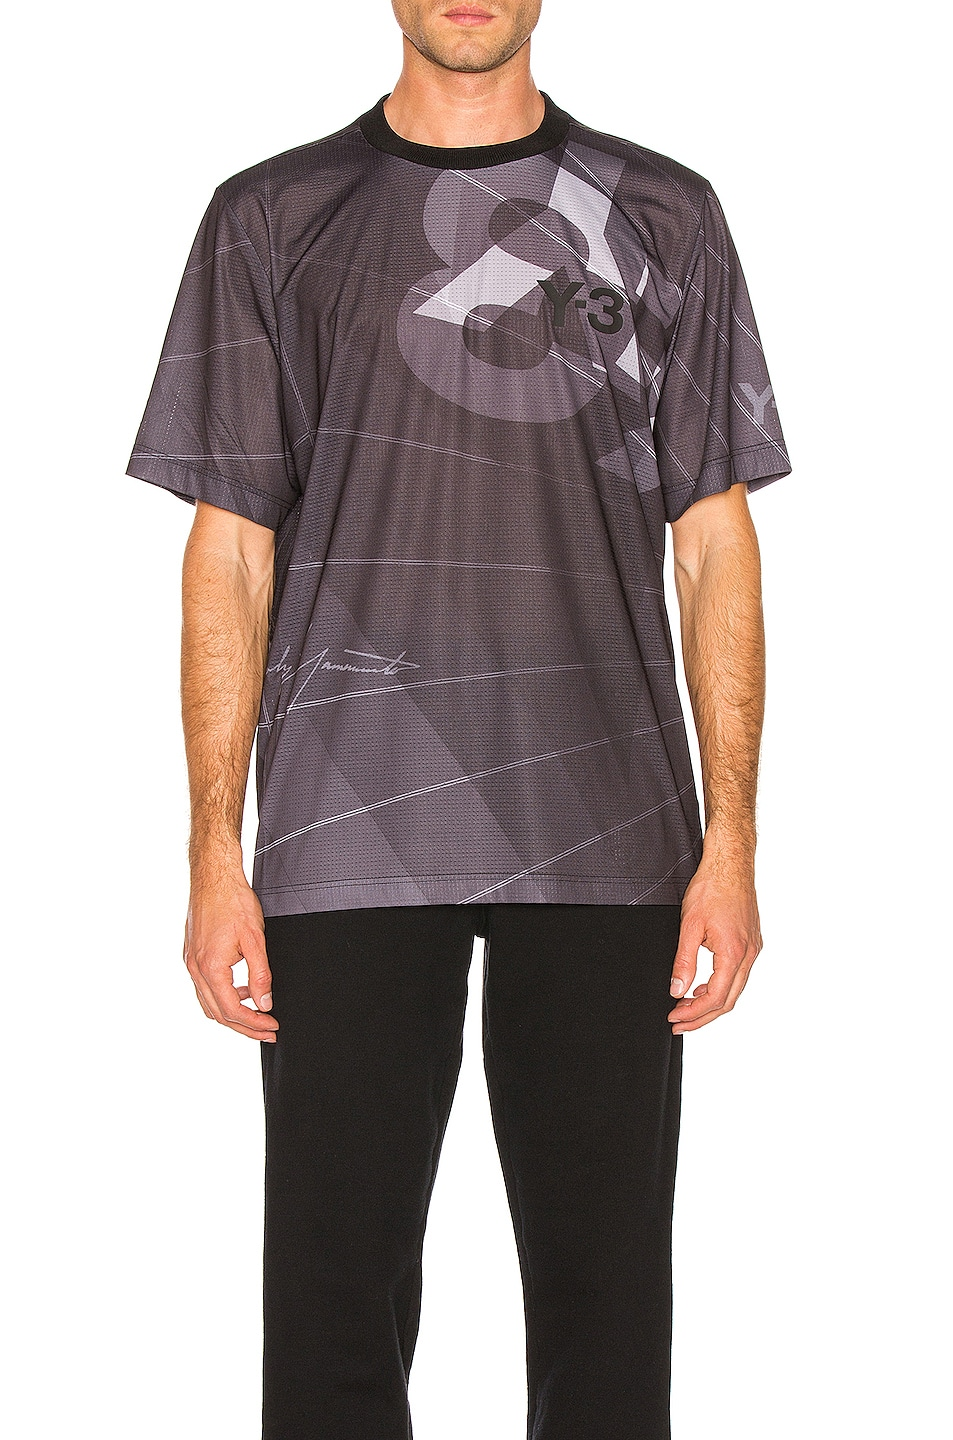 Image 1 of Y-3 Yohji Yamamoto Football Shirt in Parachute Black